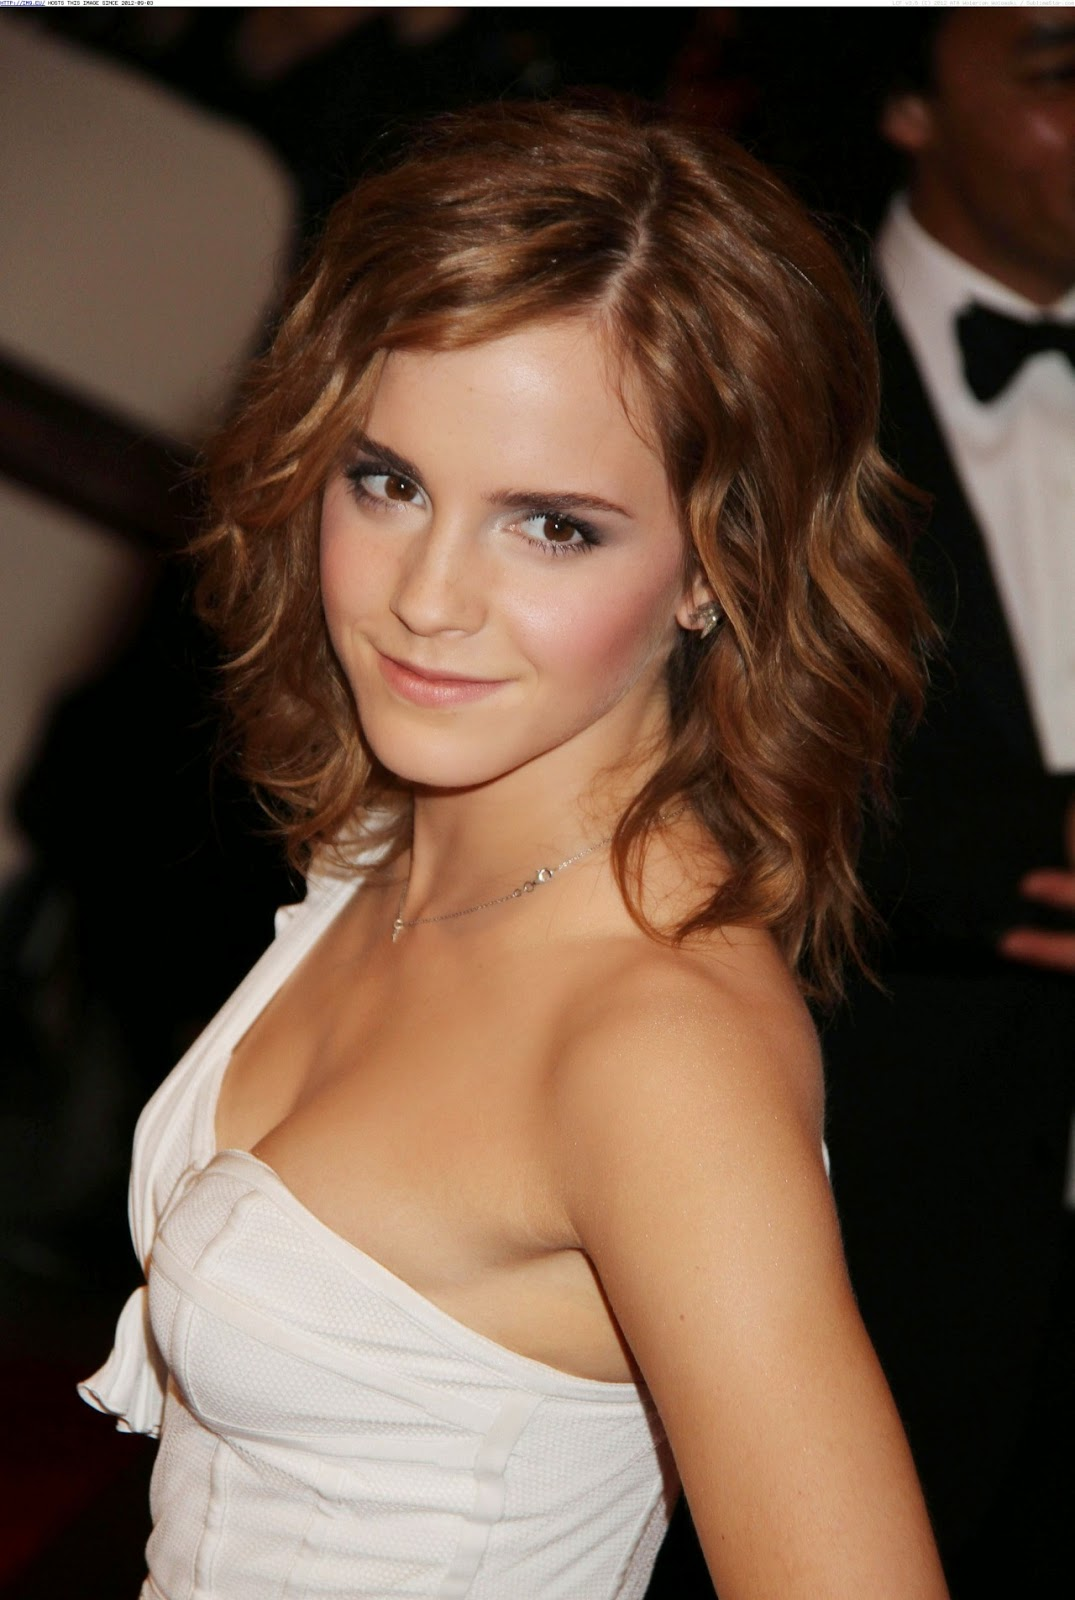 emma watson hottest photos - page 26 of 29 - unusual attractions